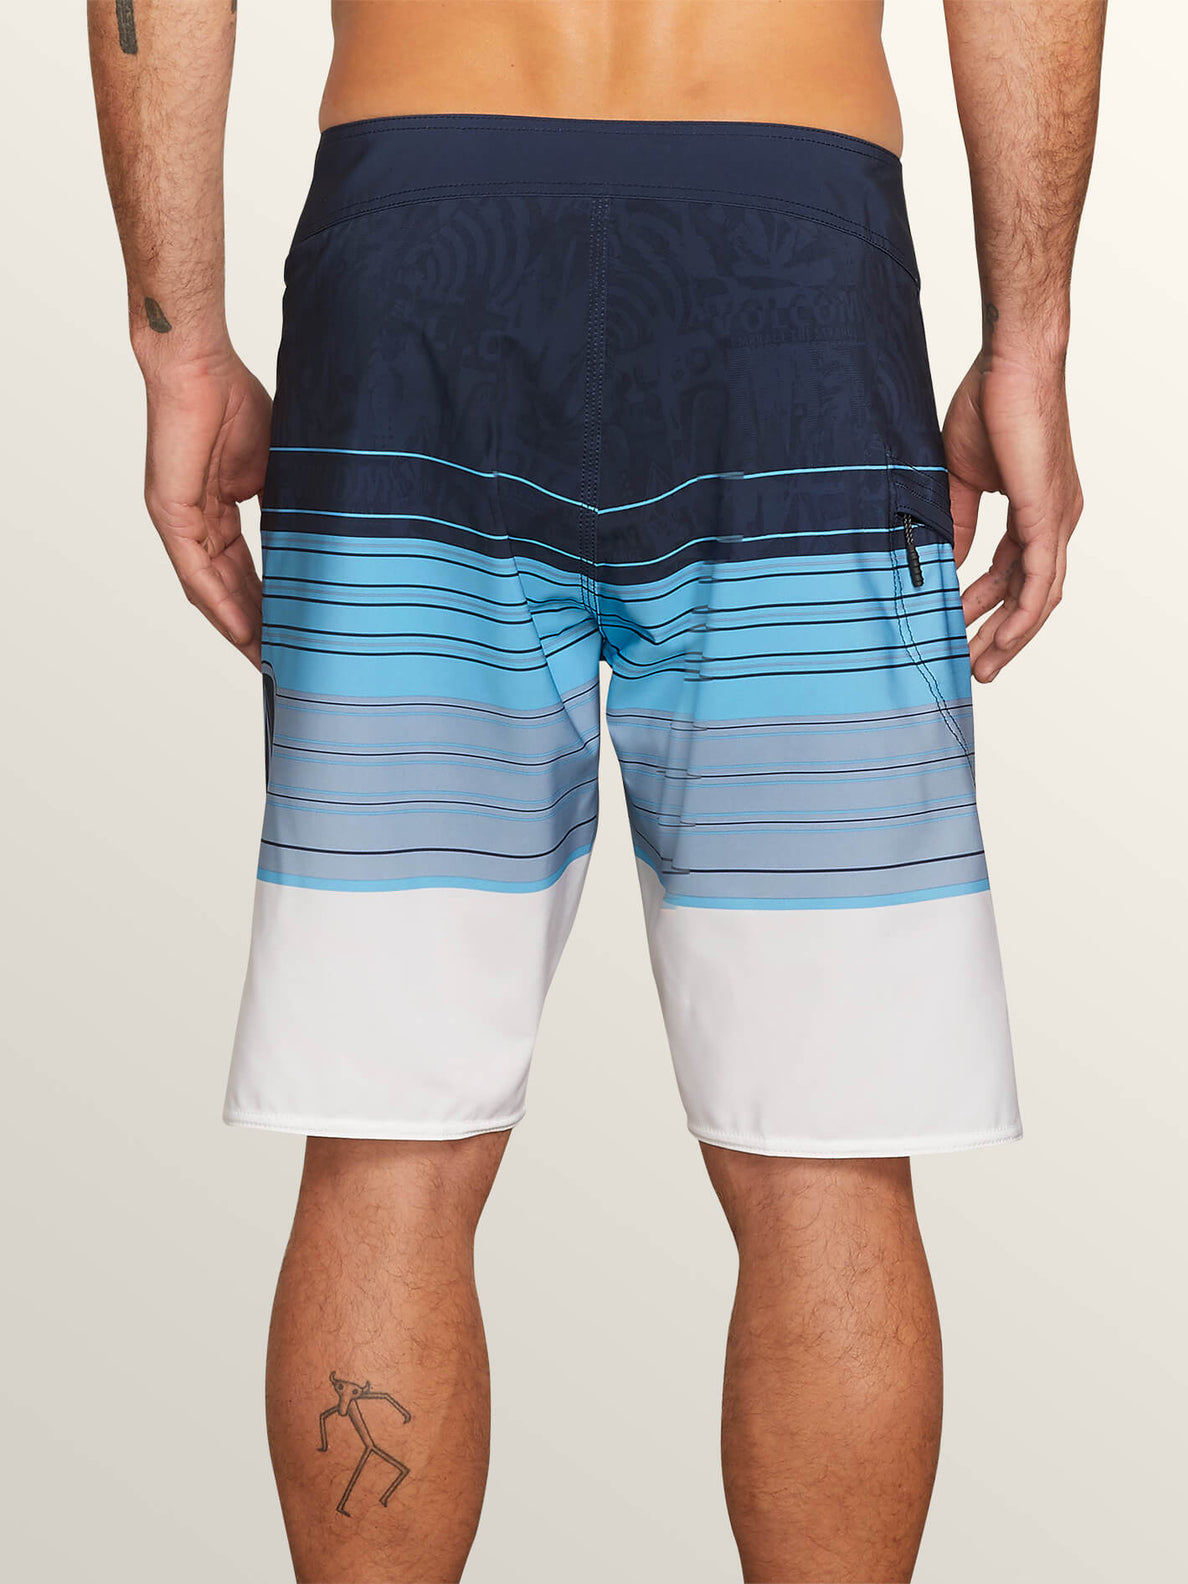 Lido Liney Mod Boardshorts In Melindigo, Back View